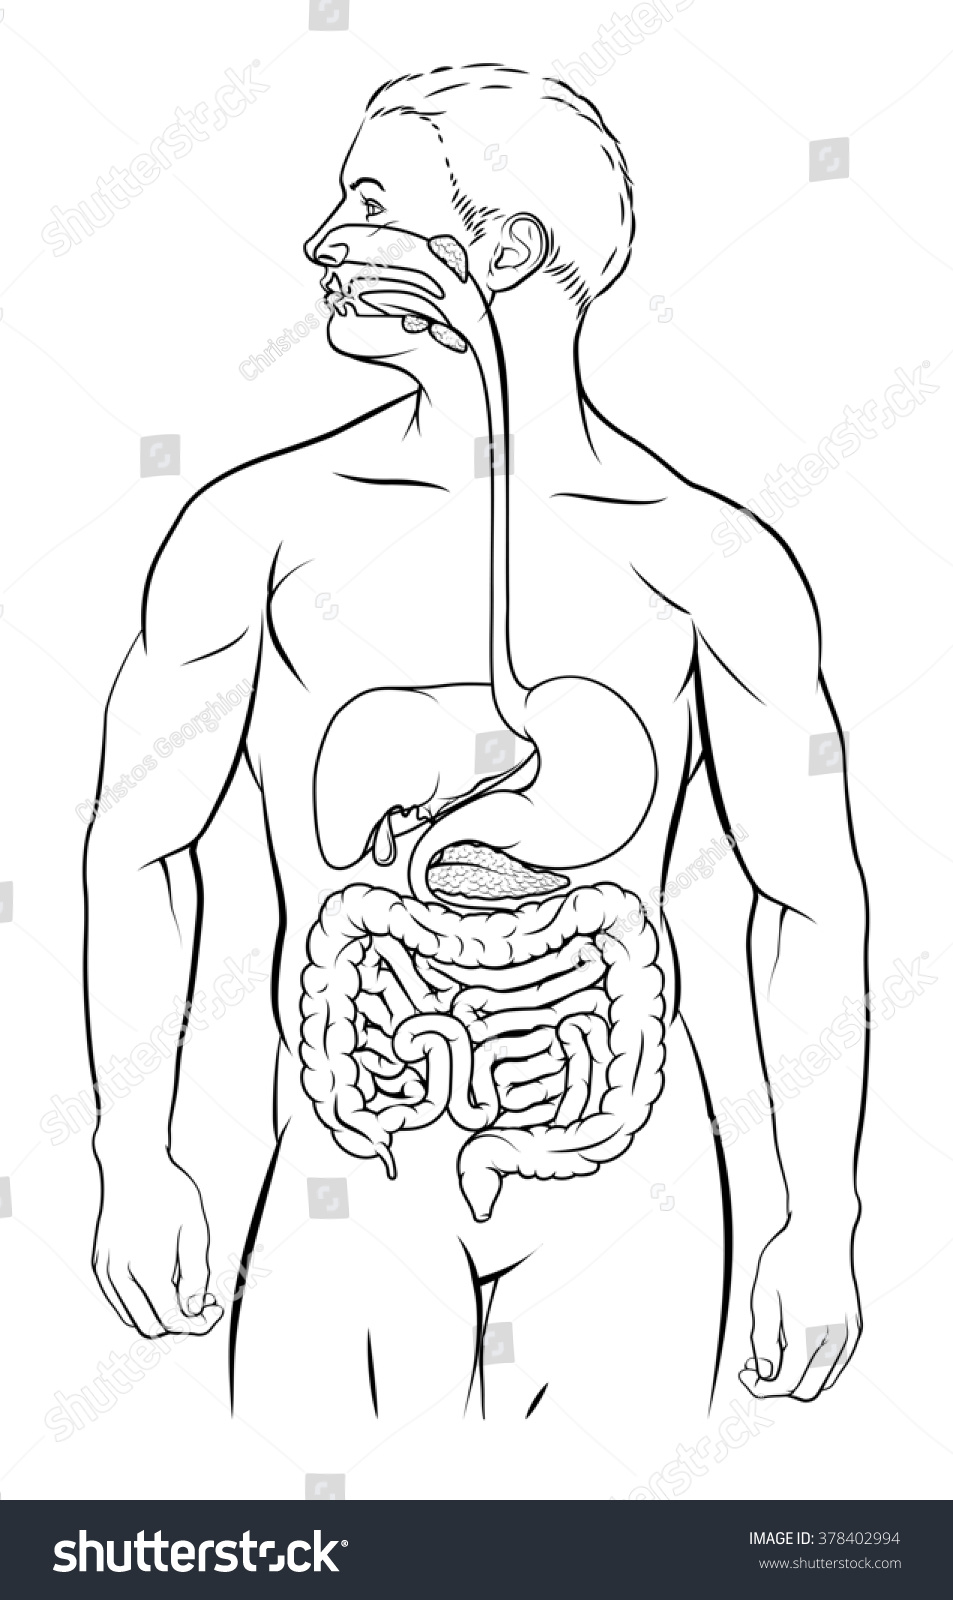 Human digestive system digestive tract alimentary stock human digestive system digestive tract or alimentary canal black and white illustration ccuart Images